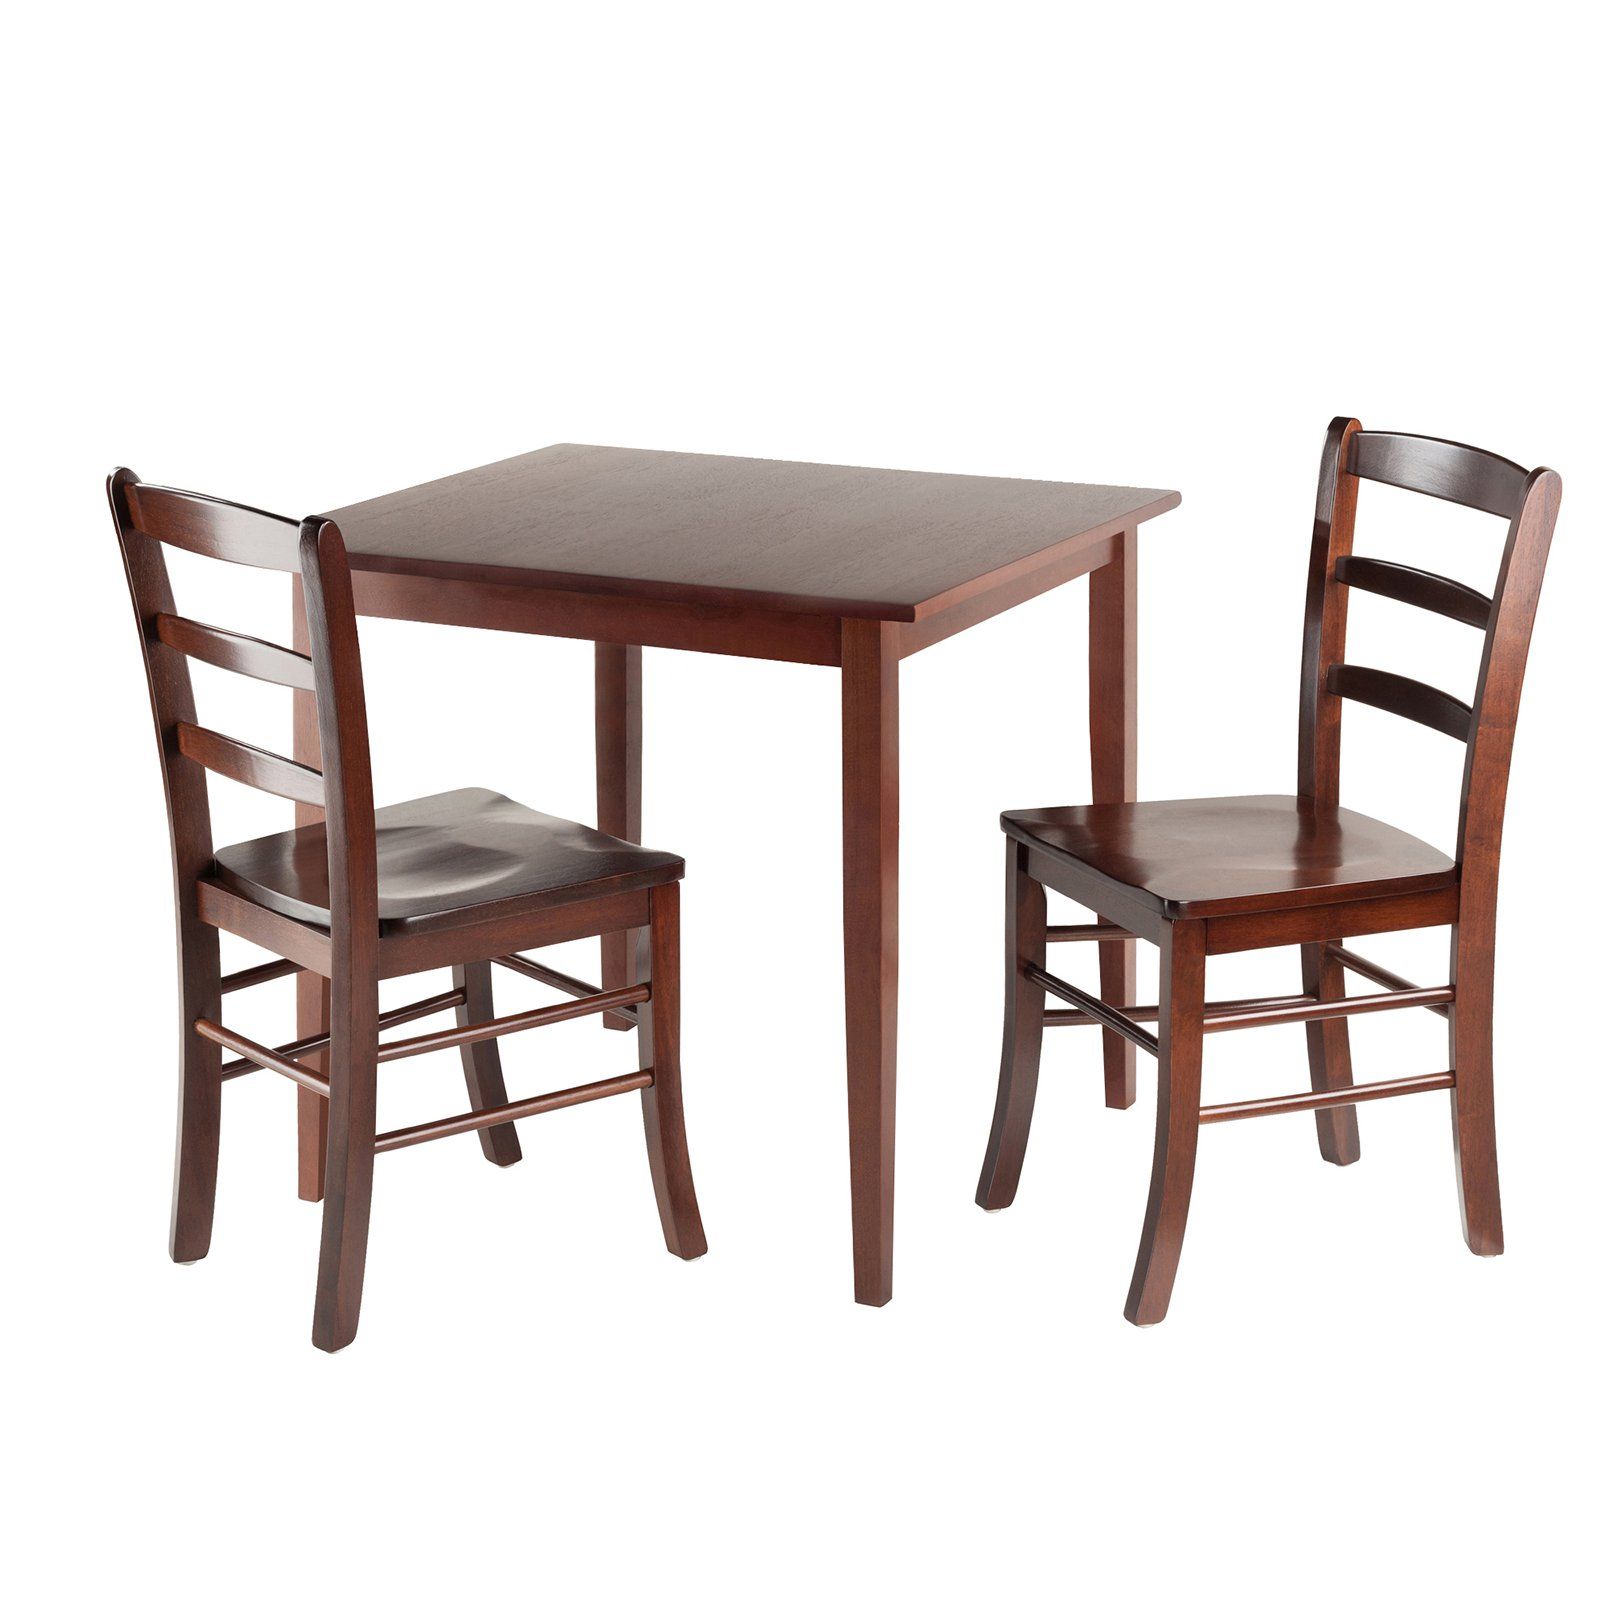 Groveland 3 Pc Square Dining Table With 2 Chairs